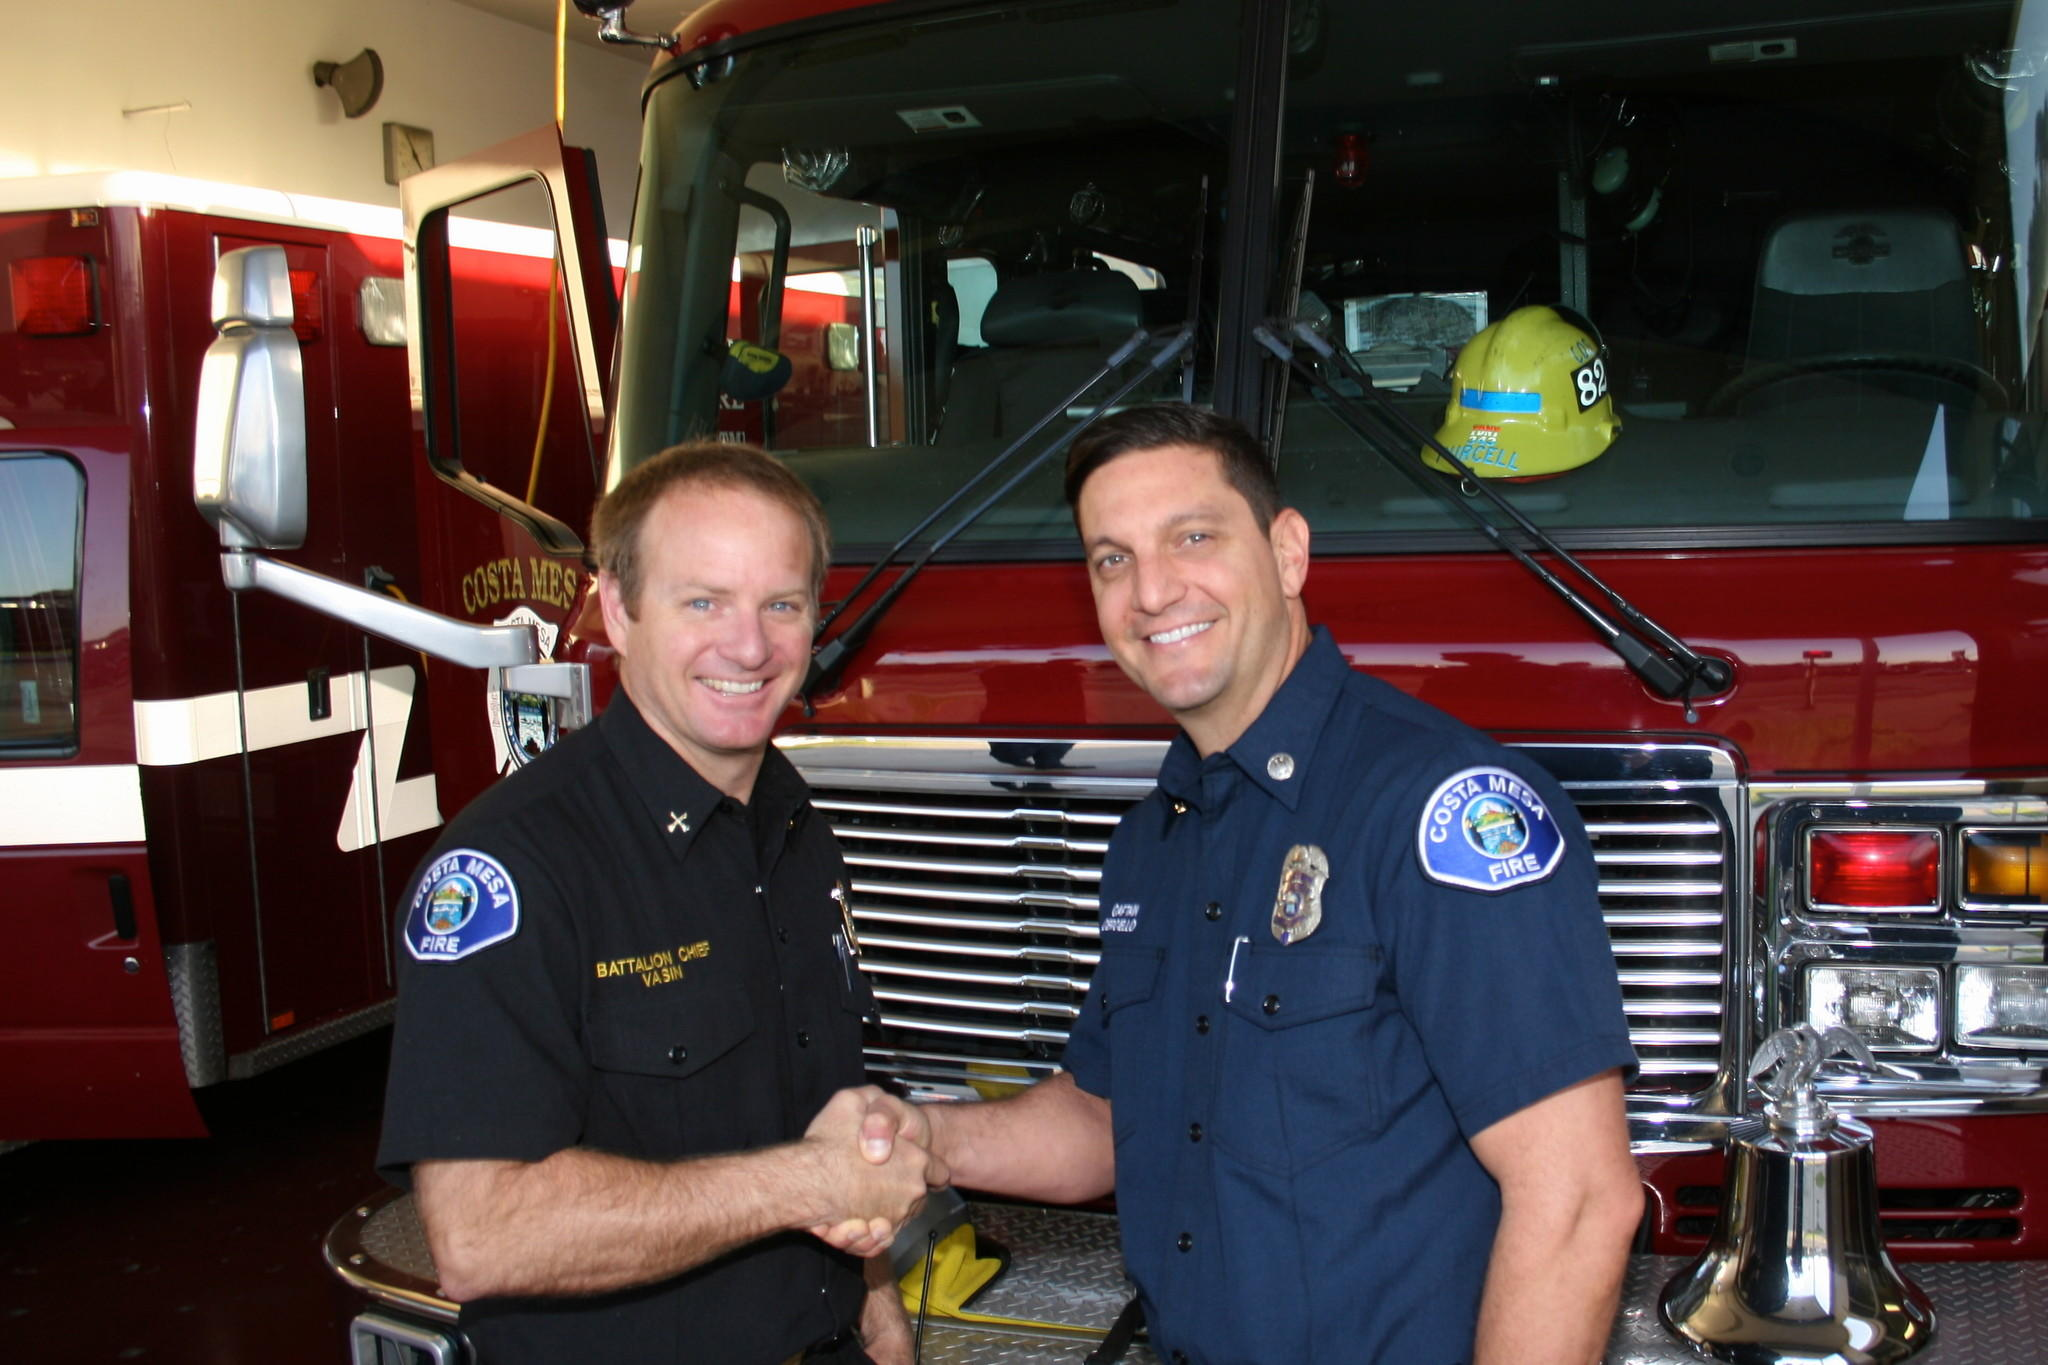 Battalion Chief Tim Vasin, left, congratulates Capt. Nick Cerciello on his first day of his new assignment.